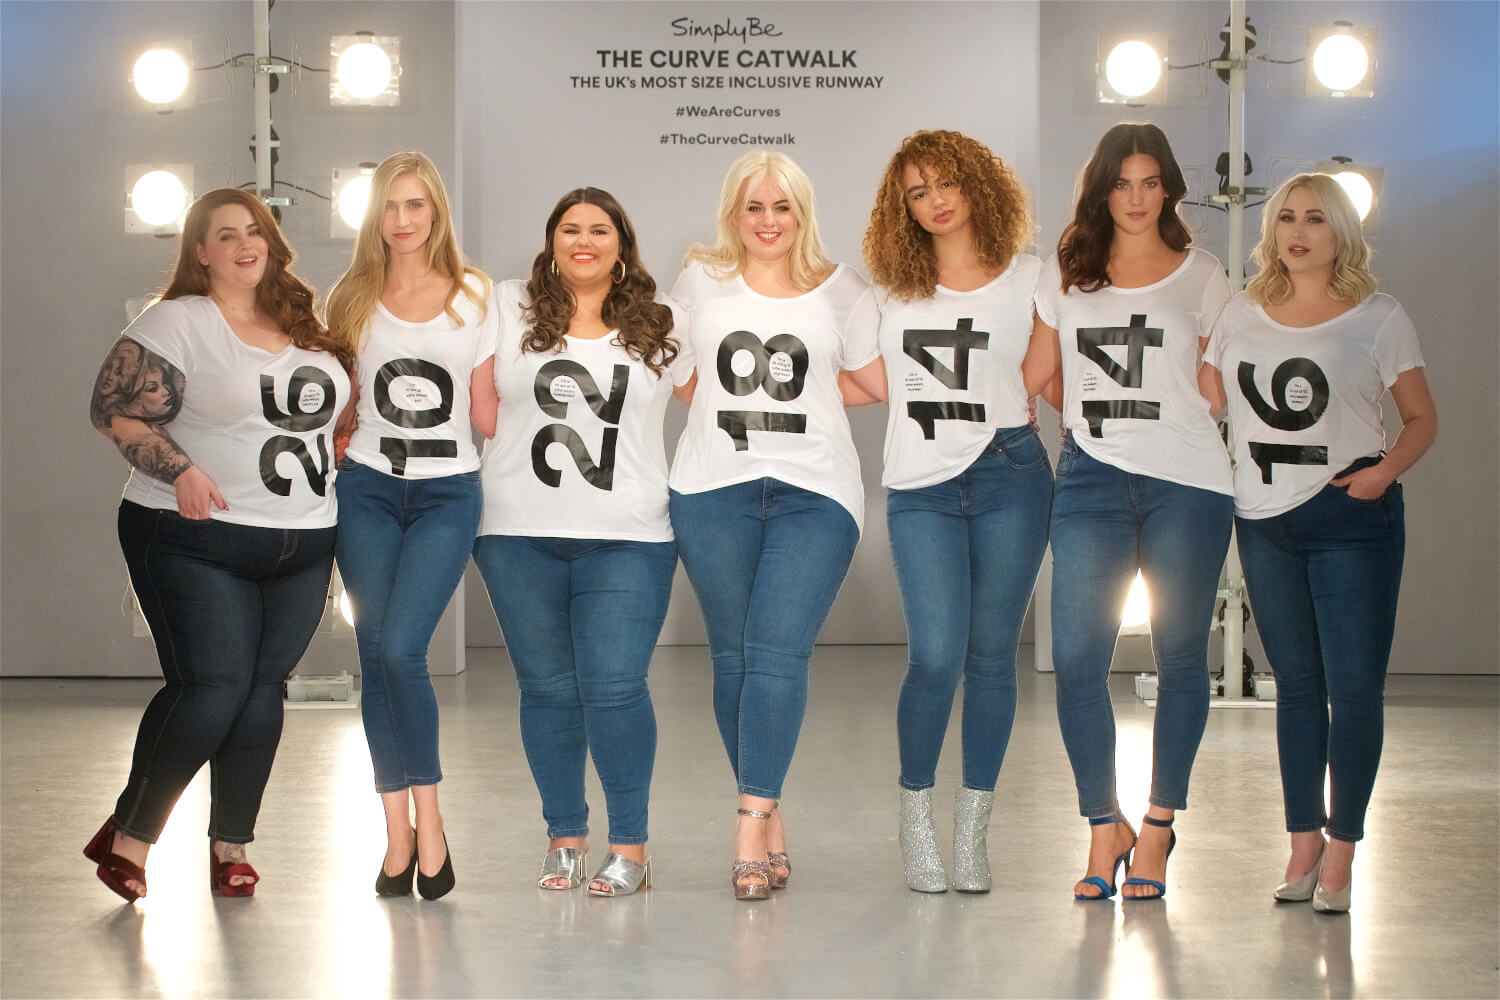 Body Beautiful: Diversity on the Catwalk